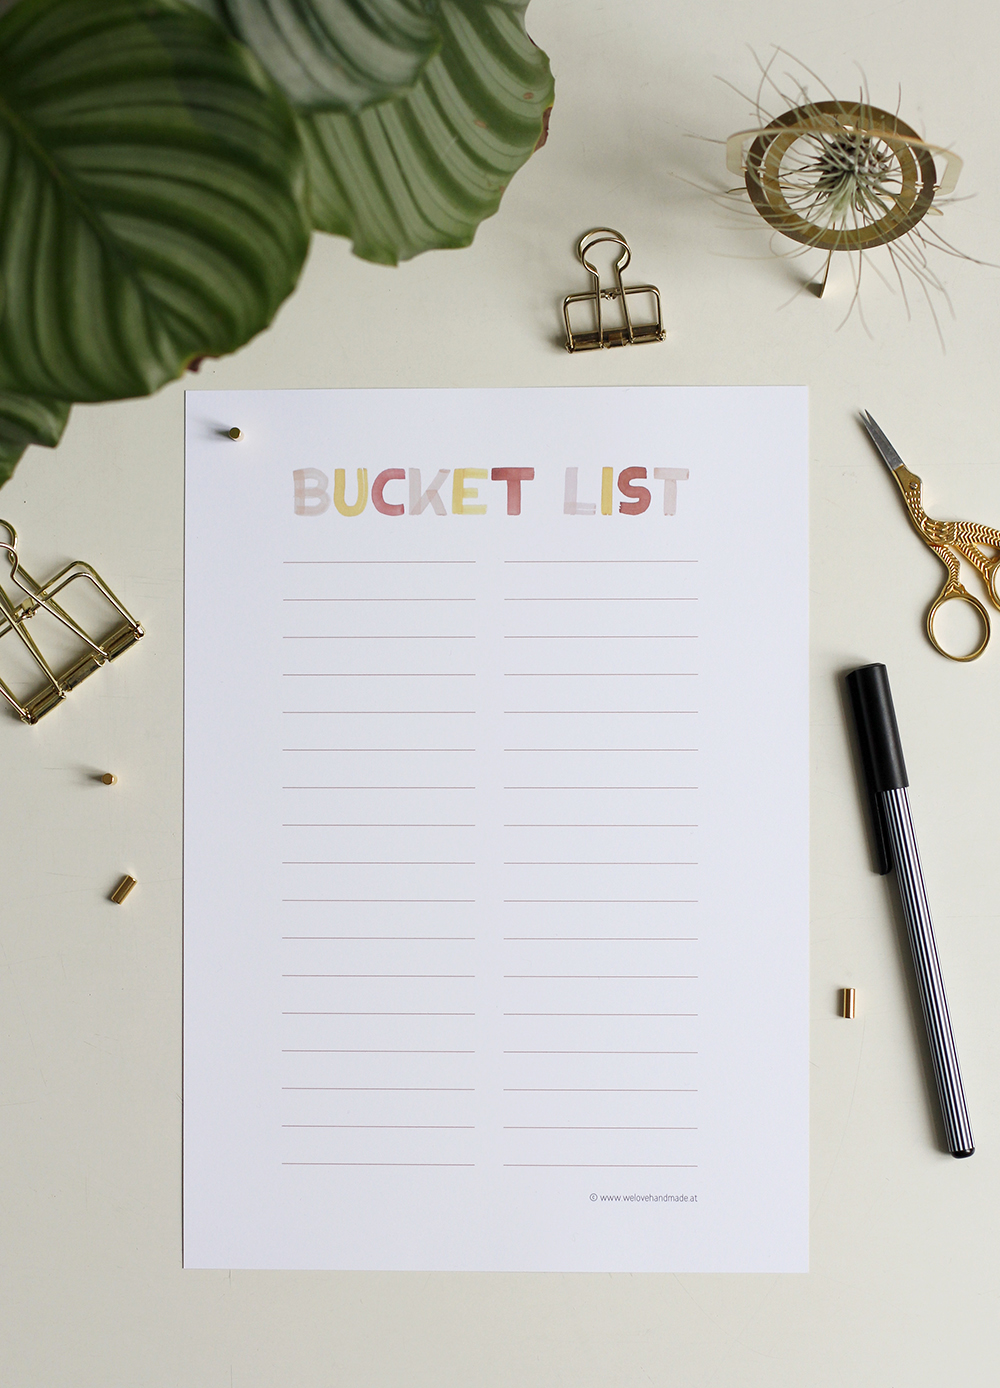 Bucket List Freebie | we love handmade